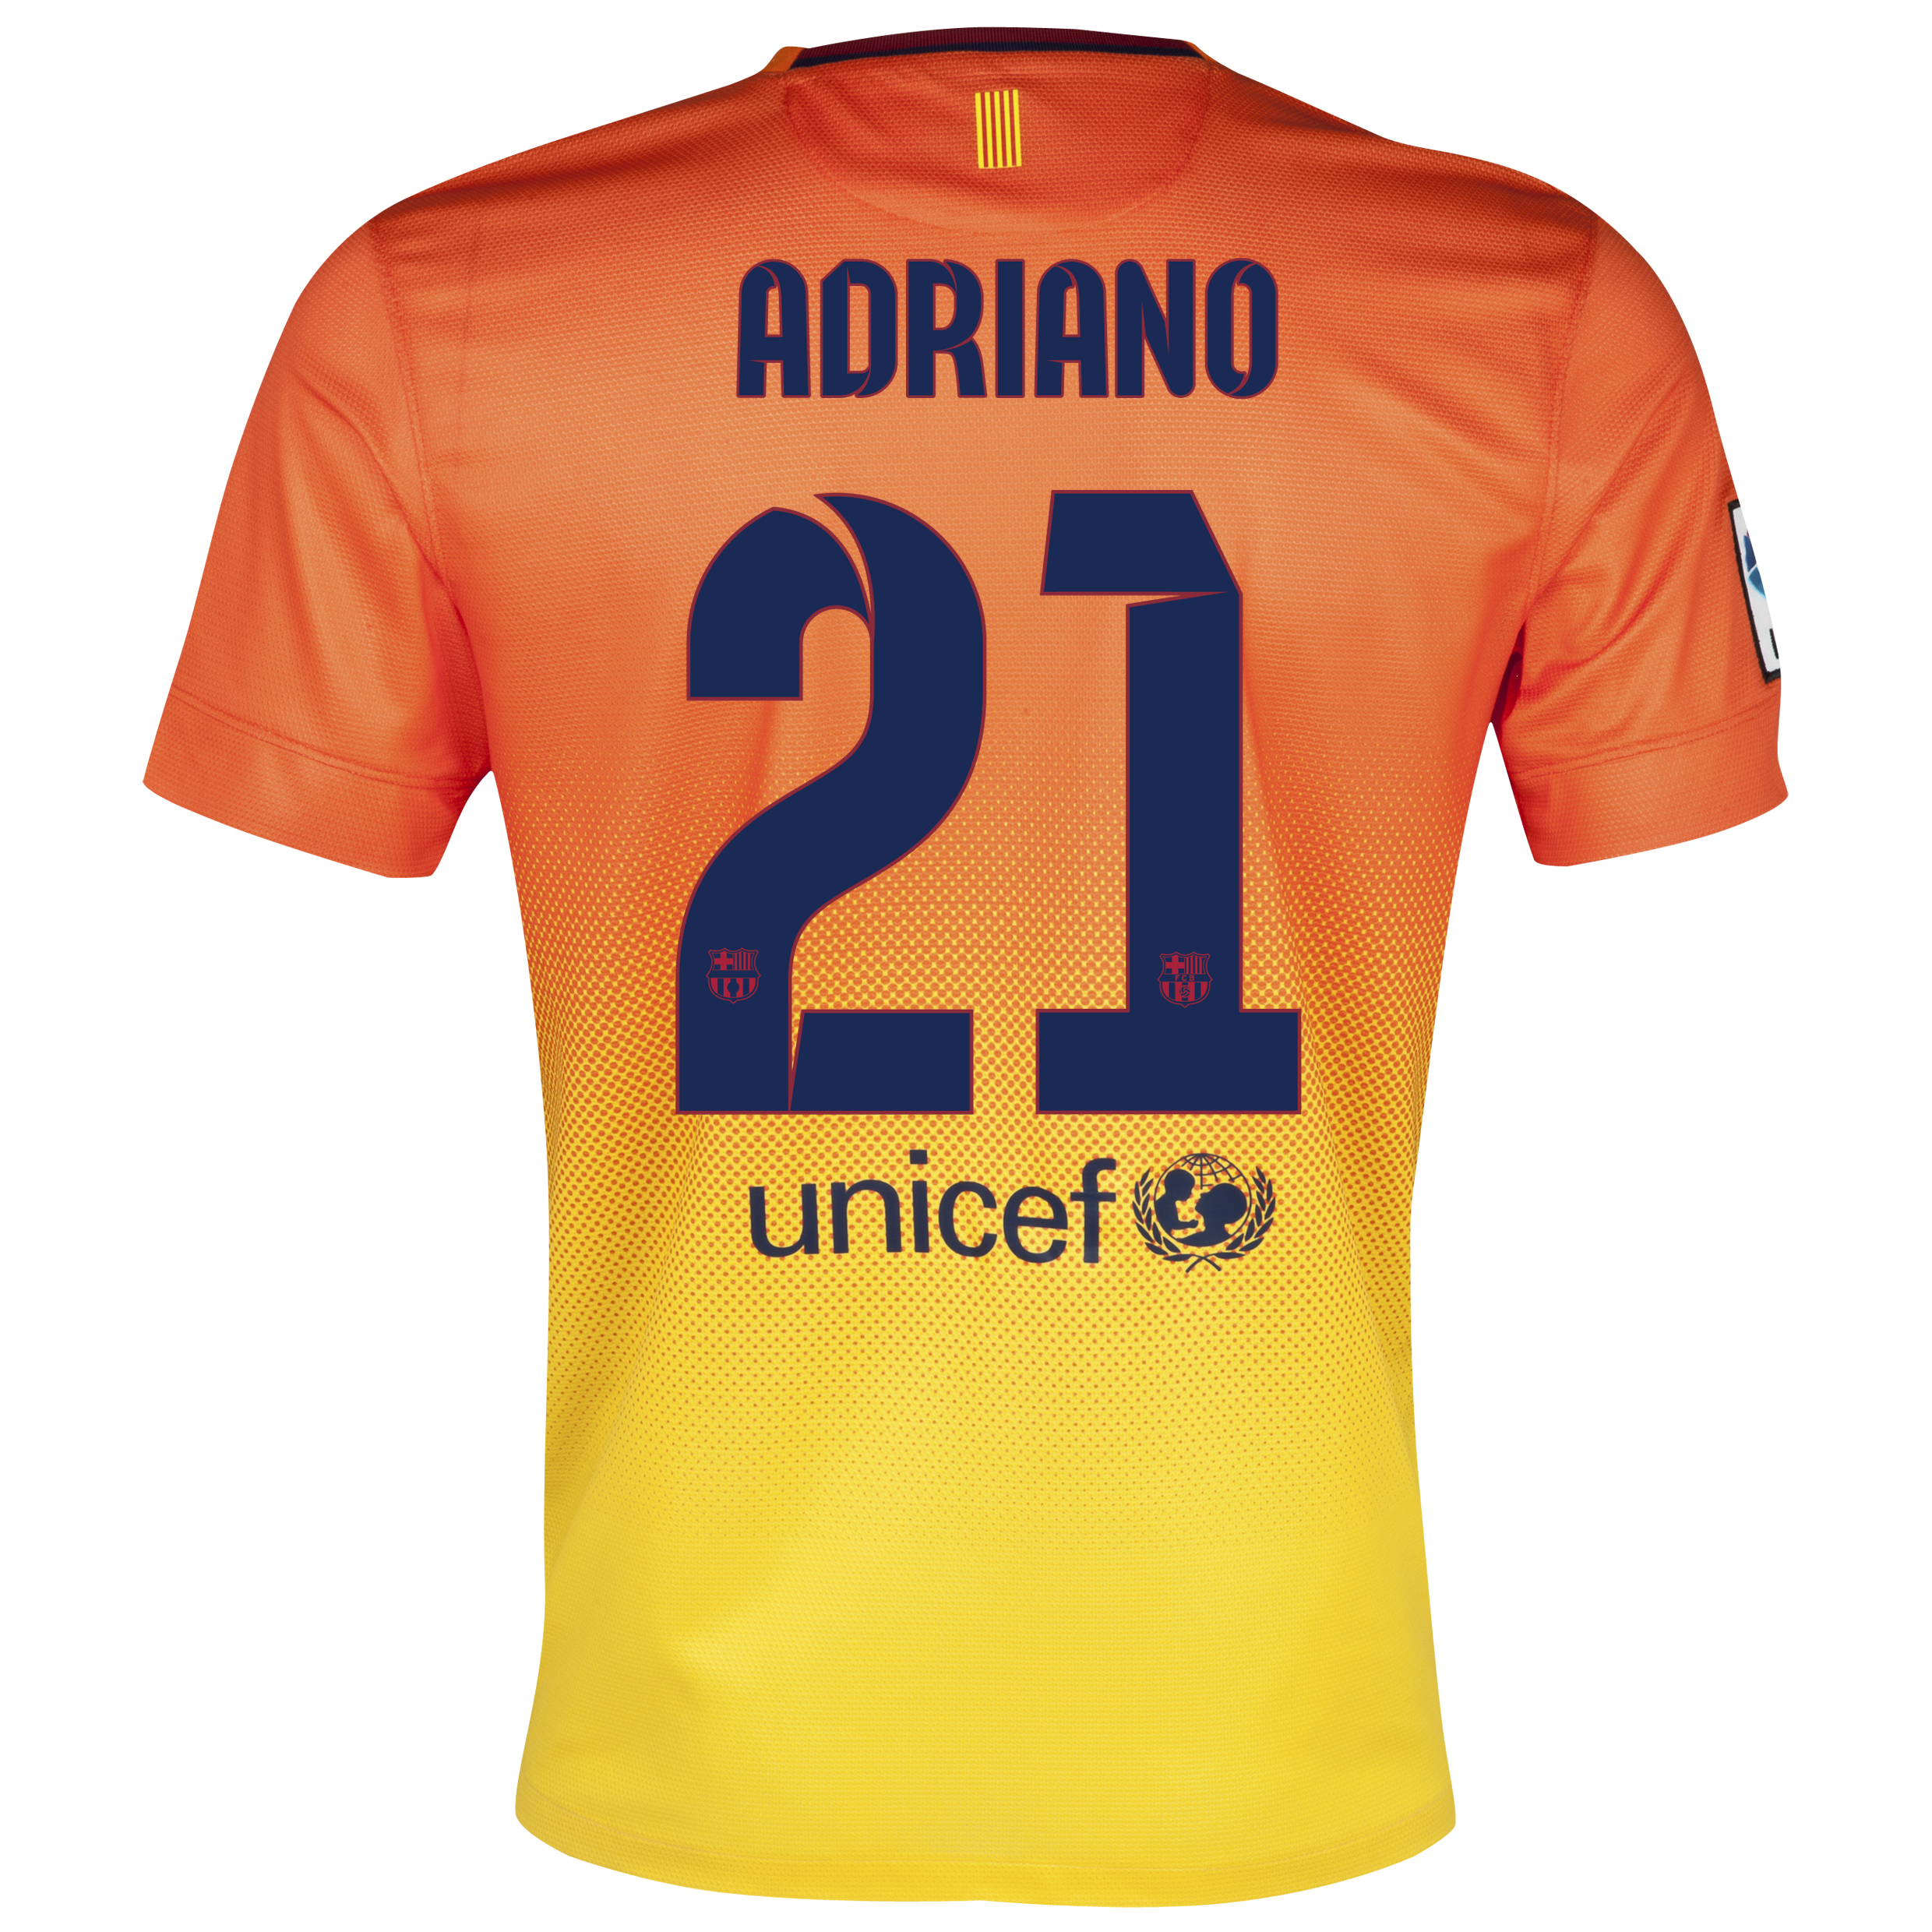 Barcelona Away Shirt 2012/13 with Adriano 21 printing